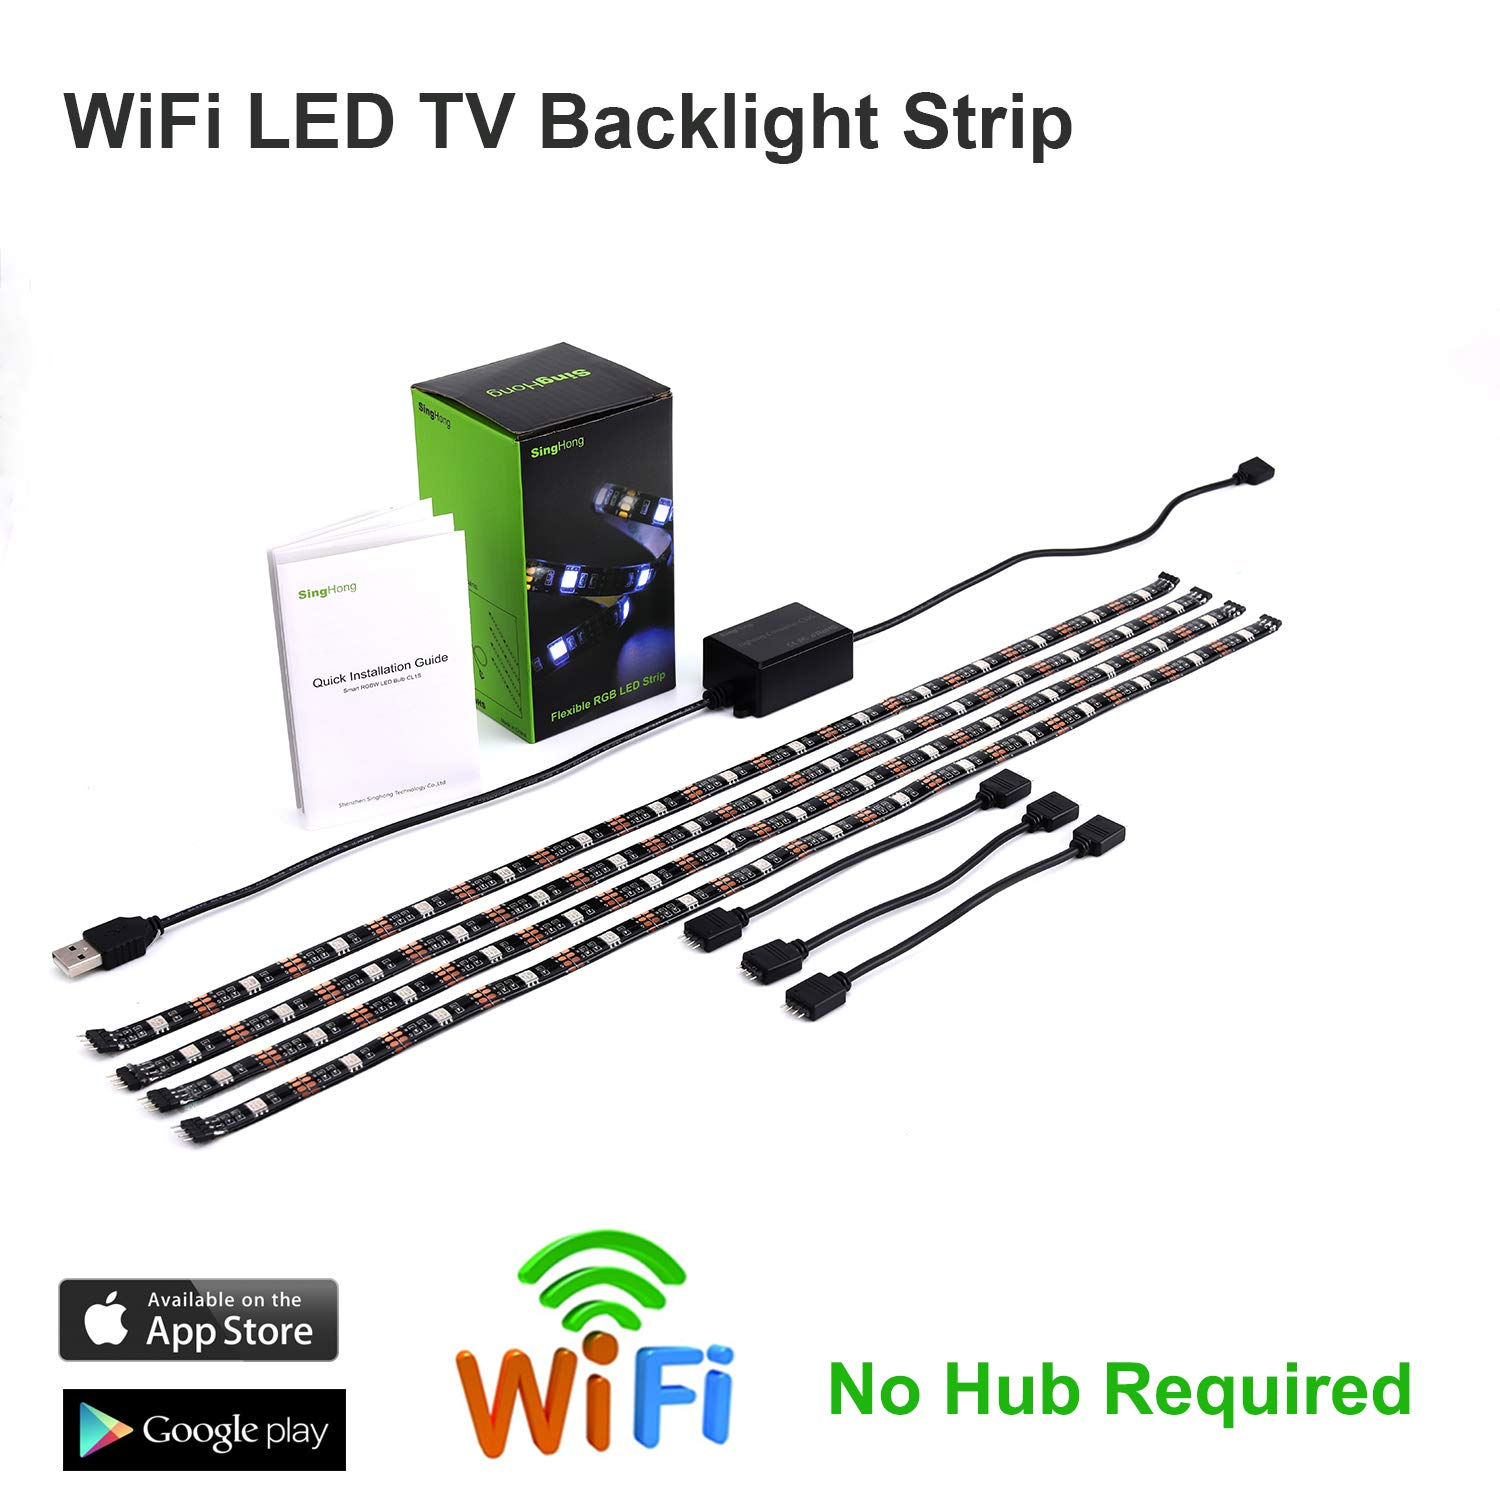 WiFi LED TV Backlight Strip, Compatible with Alexa and Google Home, USB Powered (5V DC), Flexible RGB 5050 Strips, Colour-Changeable Dimmable LED Strip (New Version) Ltd